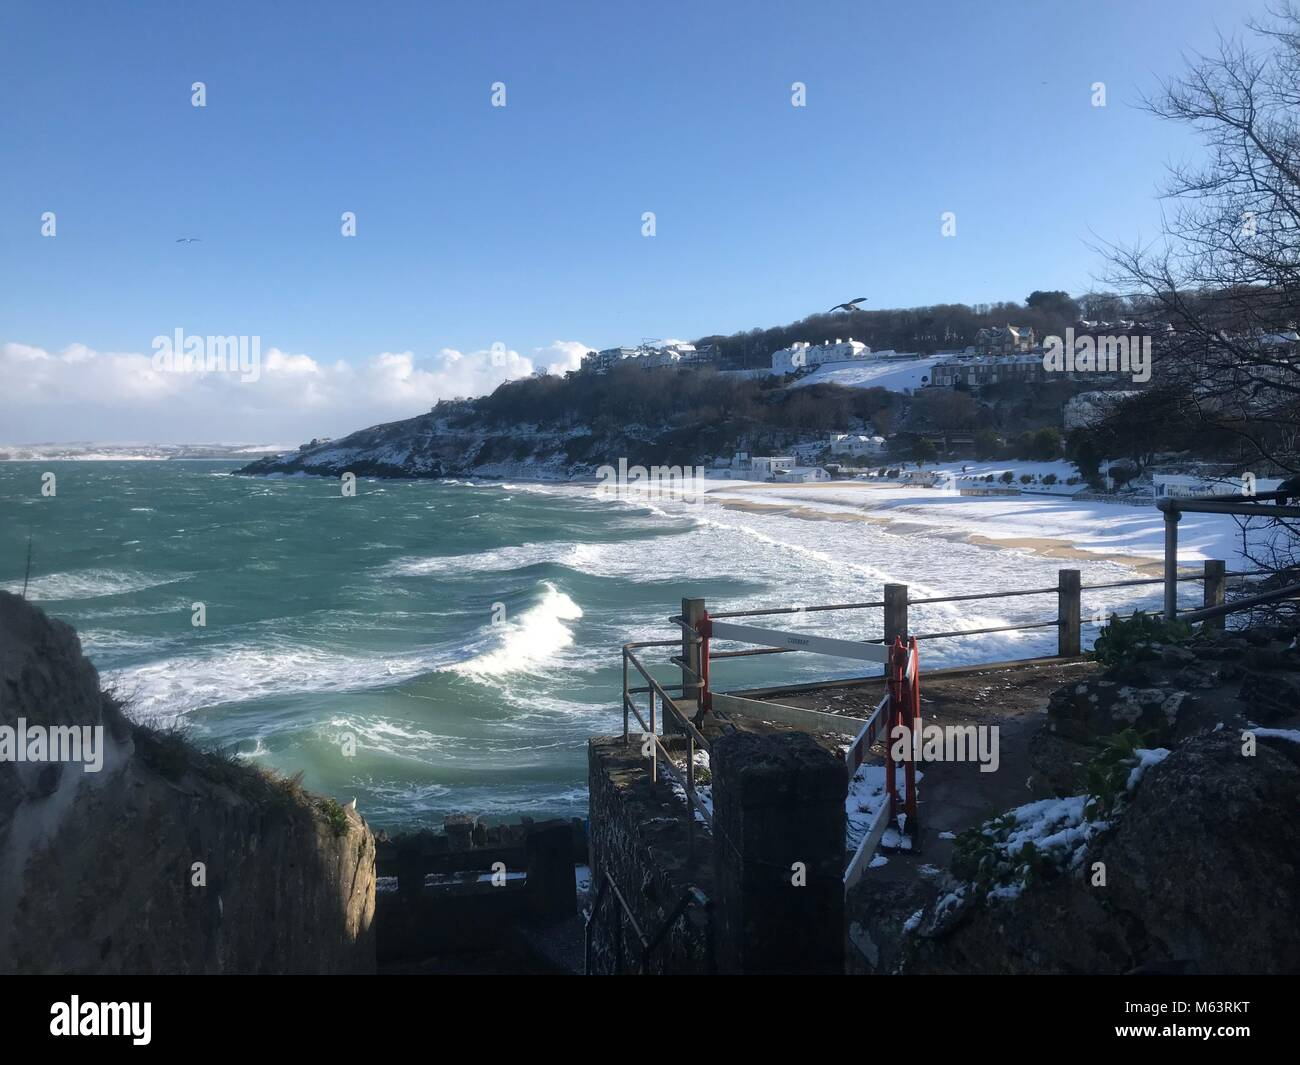 Snow blankets Porthminster Beach as snow storm brings heavy snow fall to St Ives, Cornwall. - Stock Image